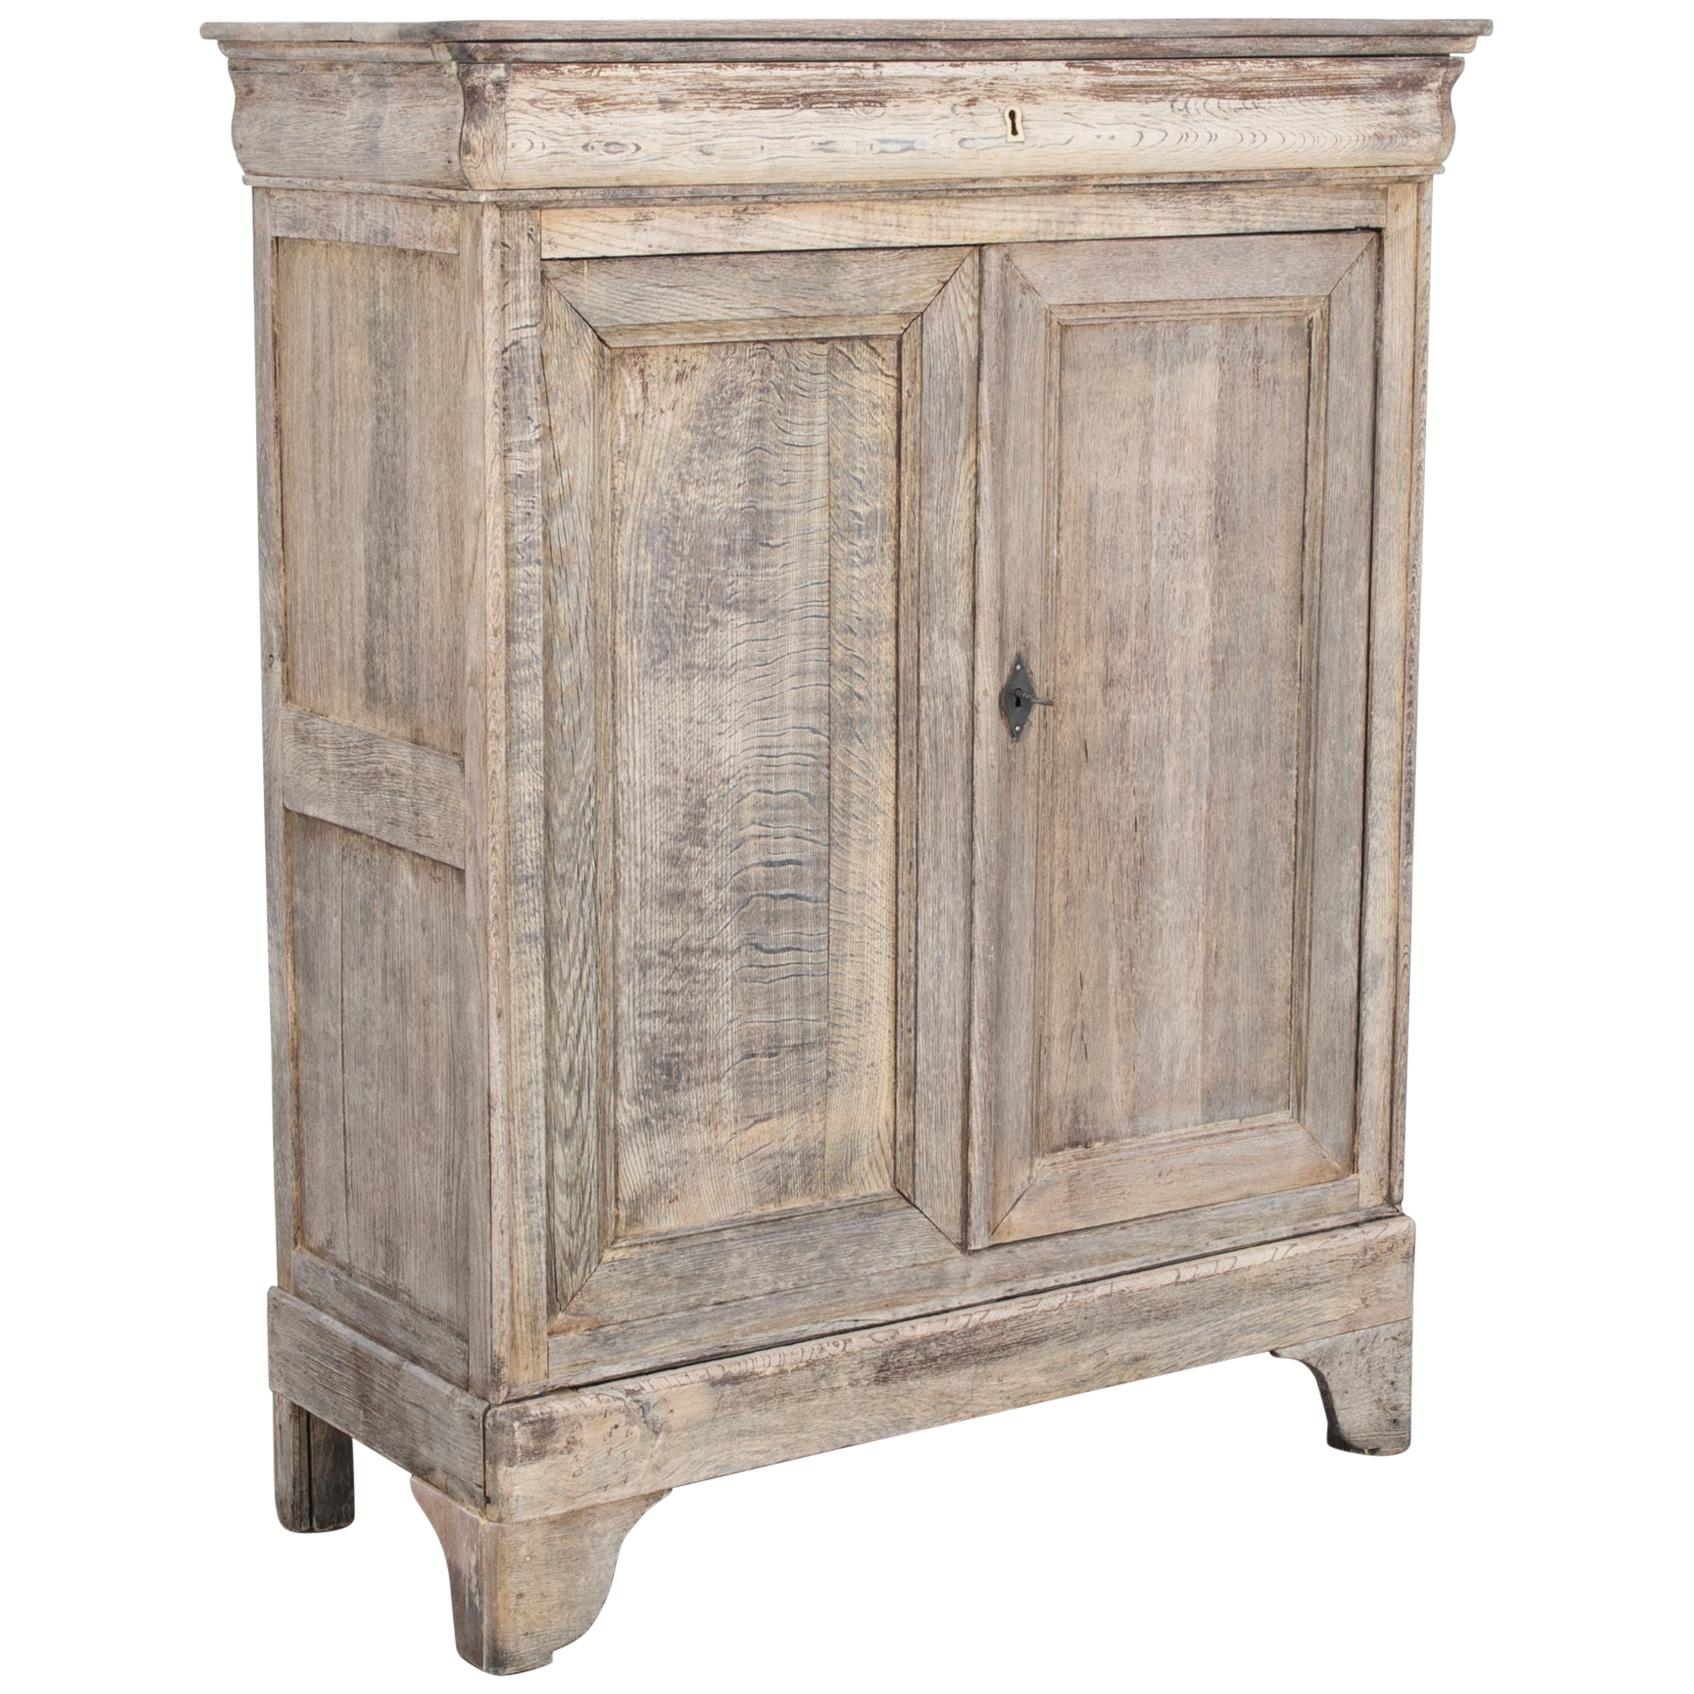 1860s French Country Oak Cabinet